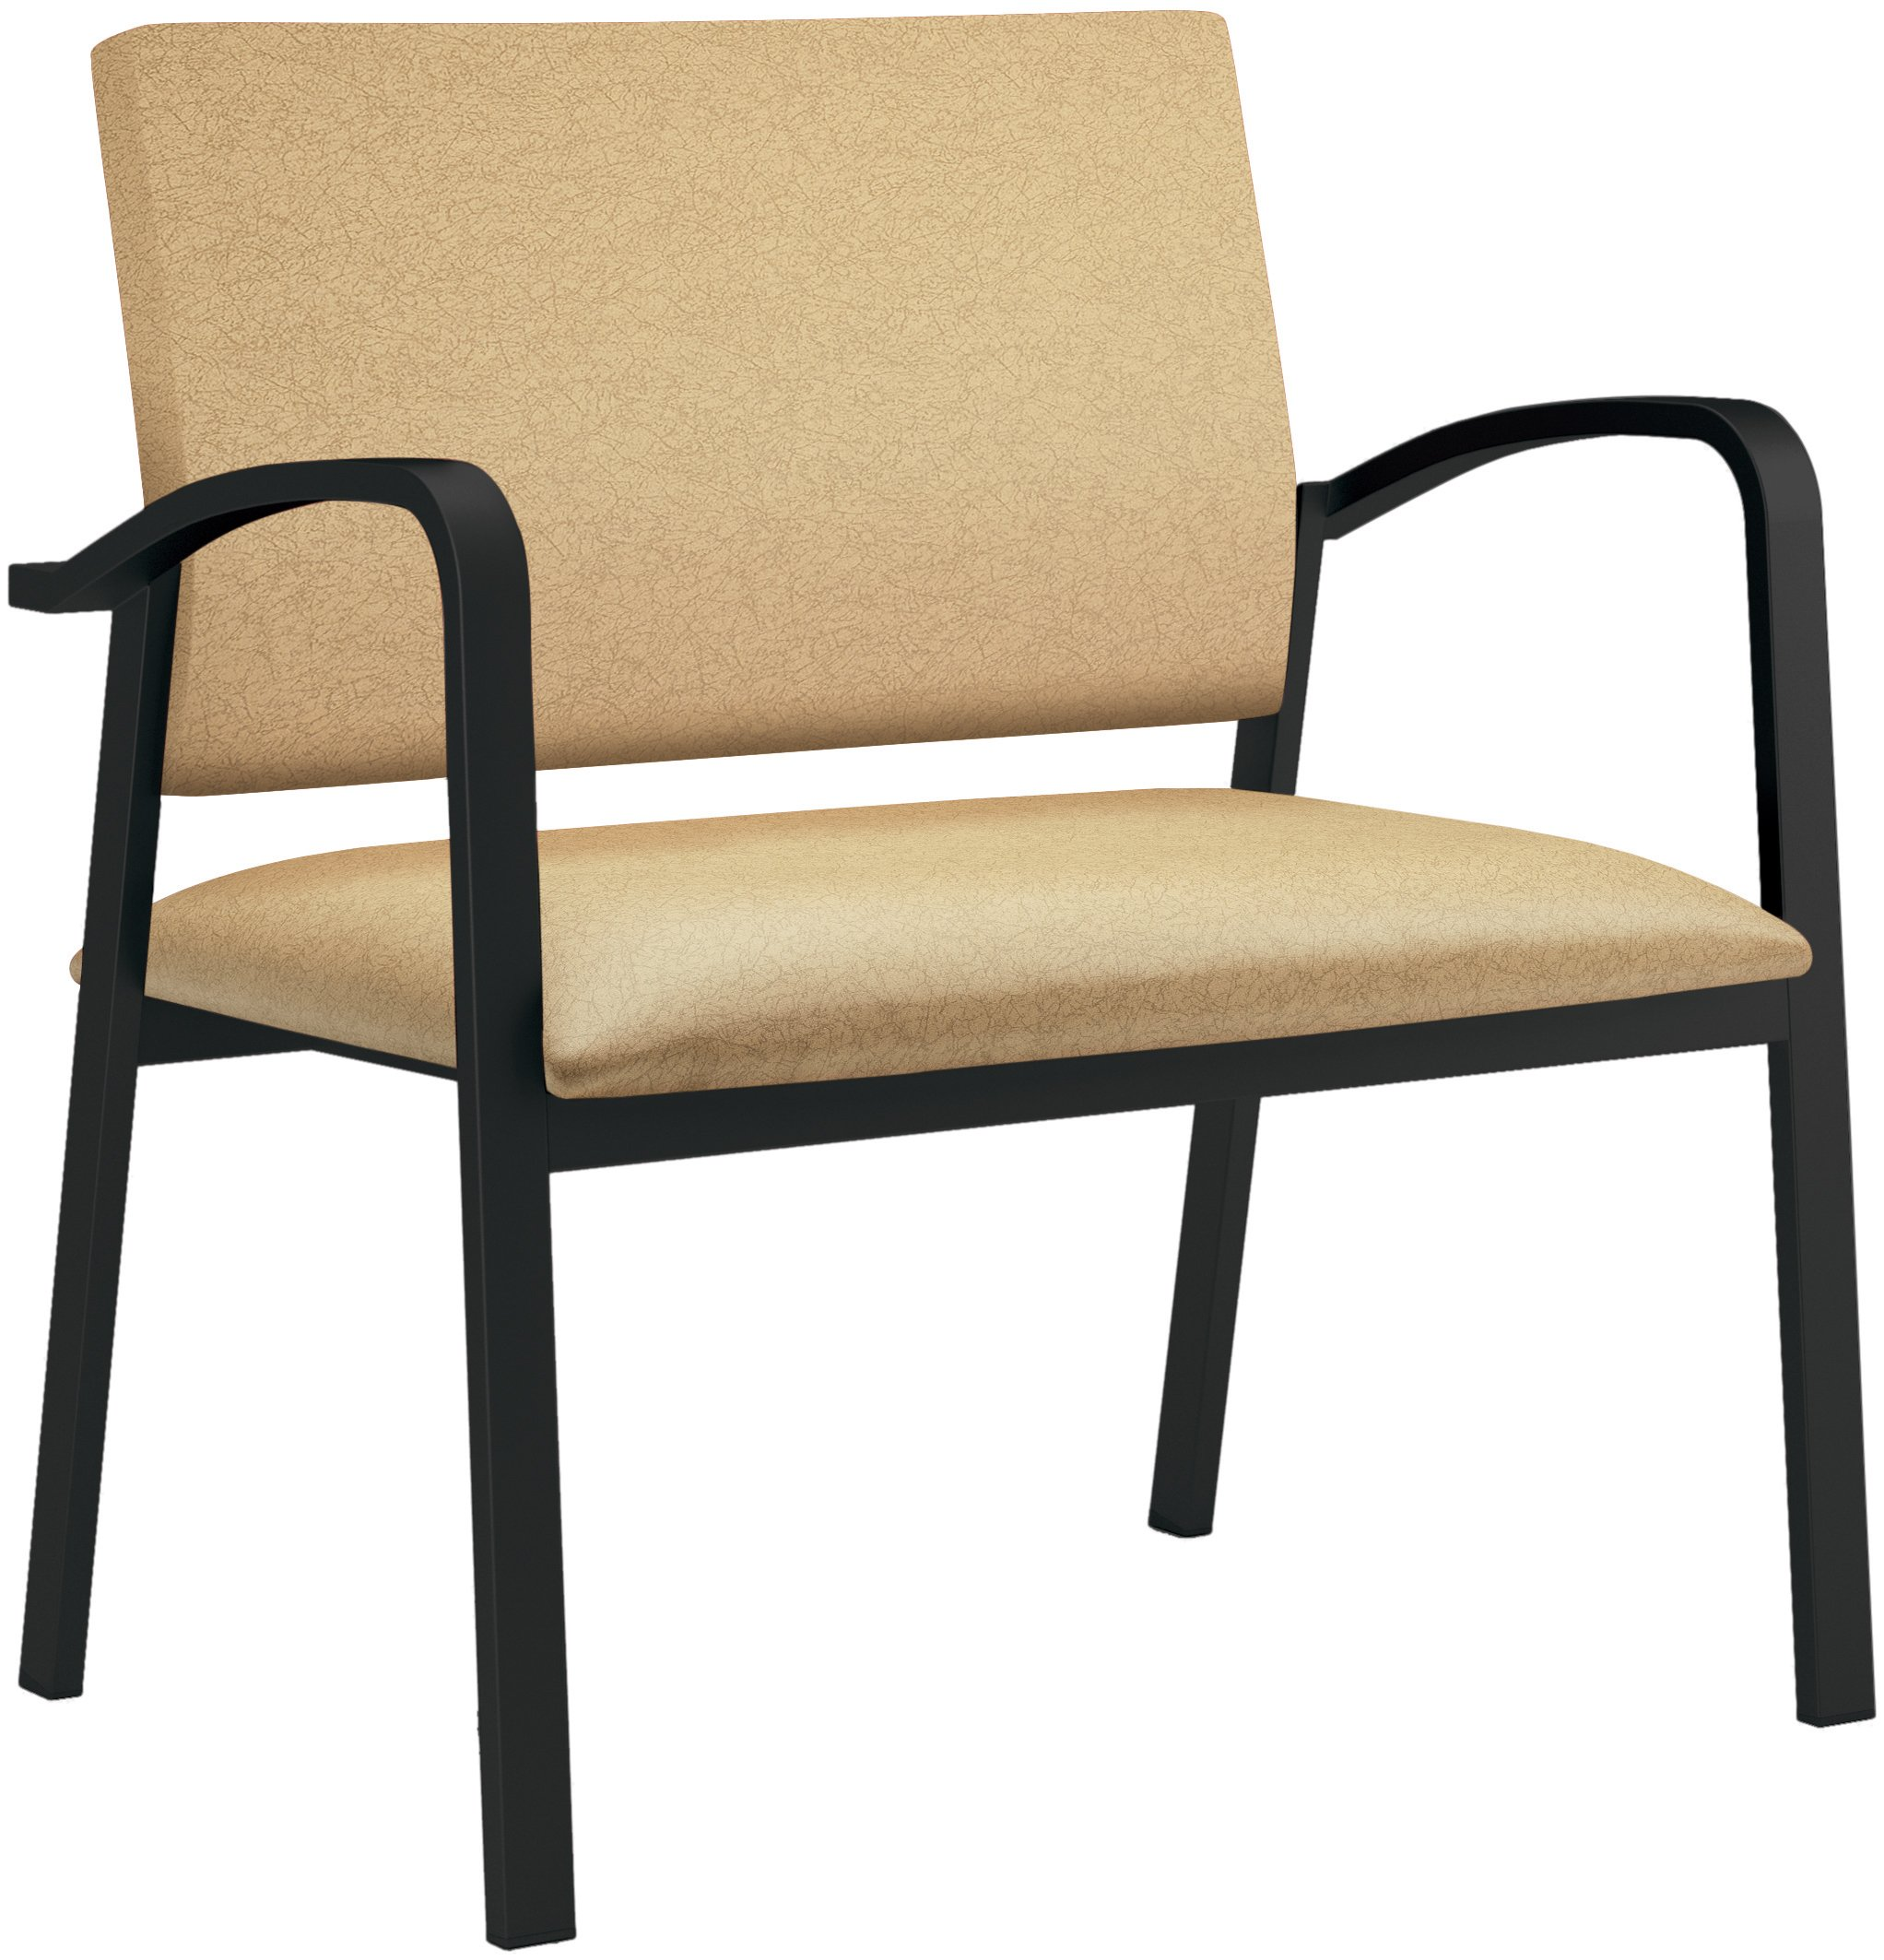 Newport Healthcare Vinyl Bariatric Guest Chair, Renaissance Gypsum, Black